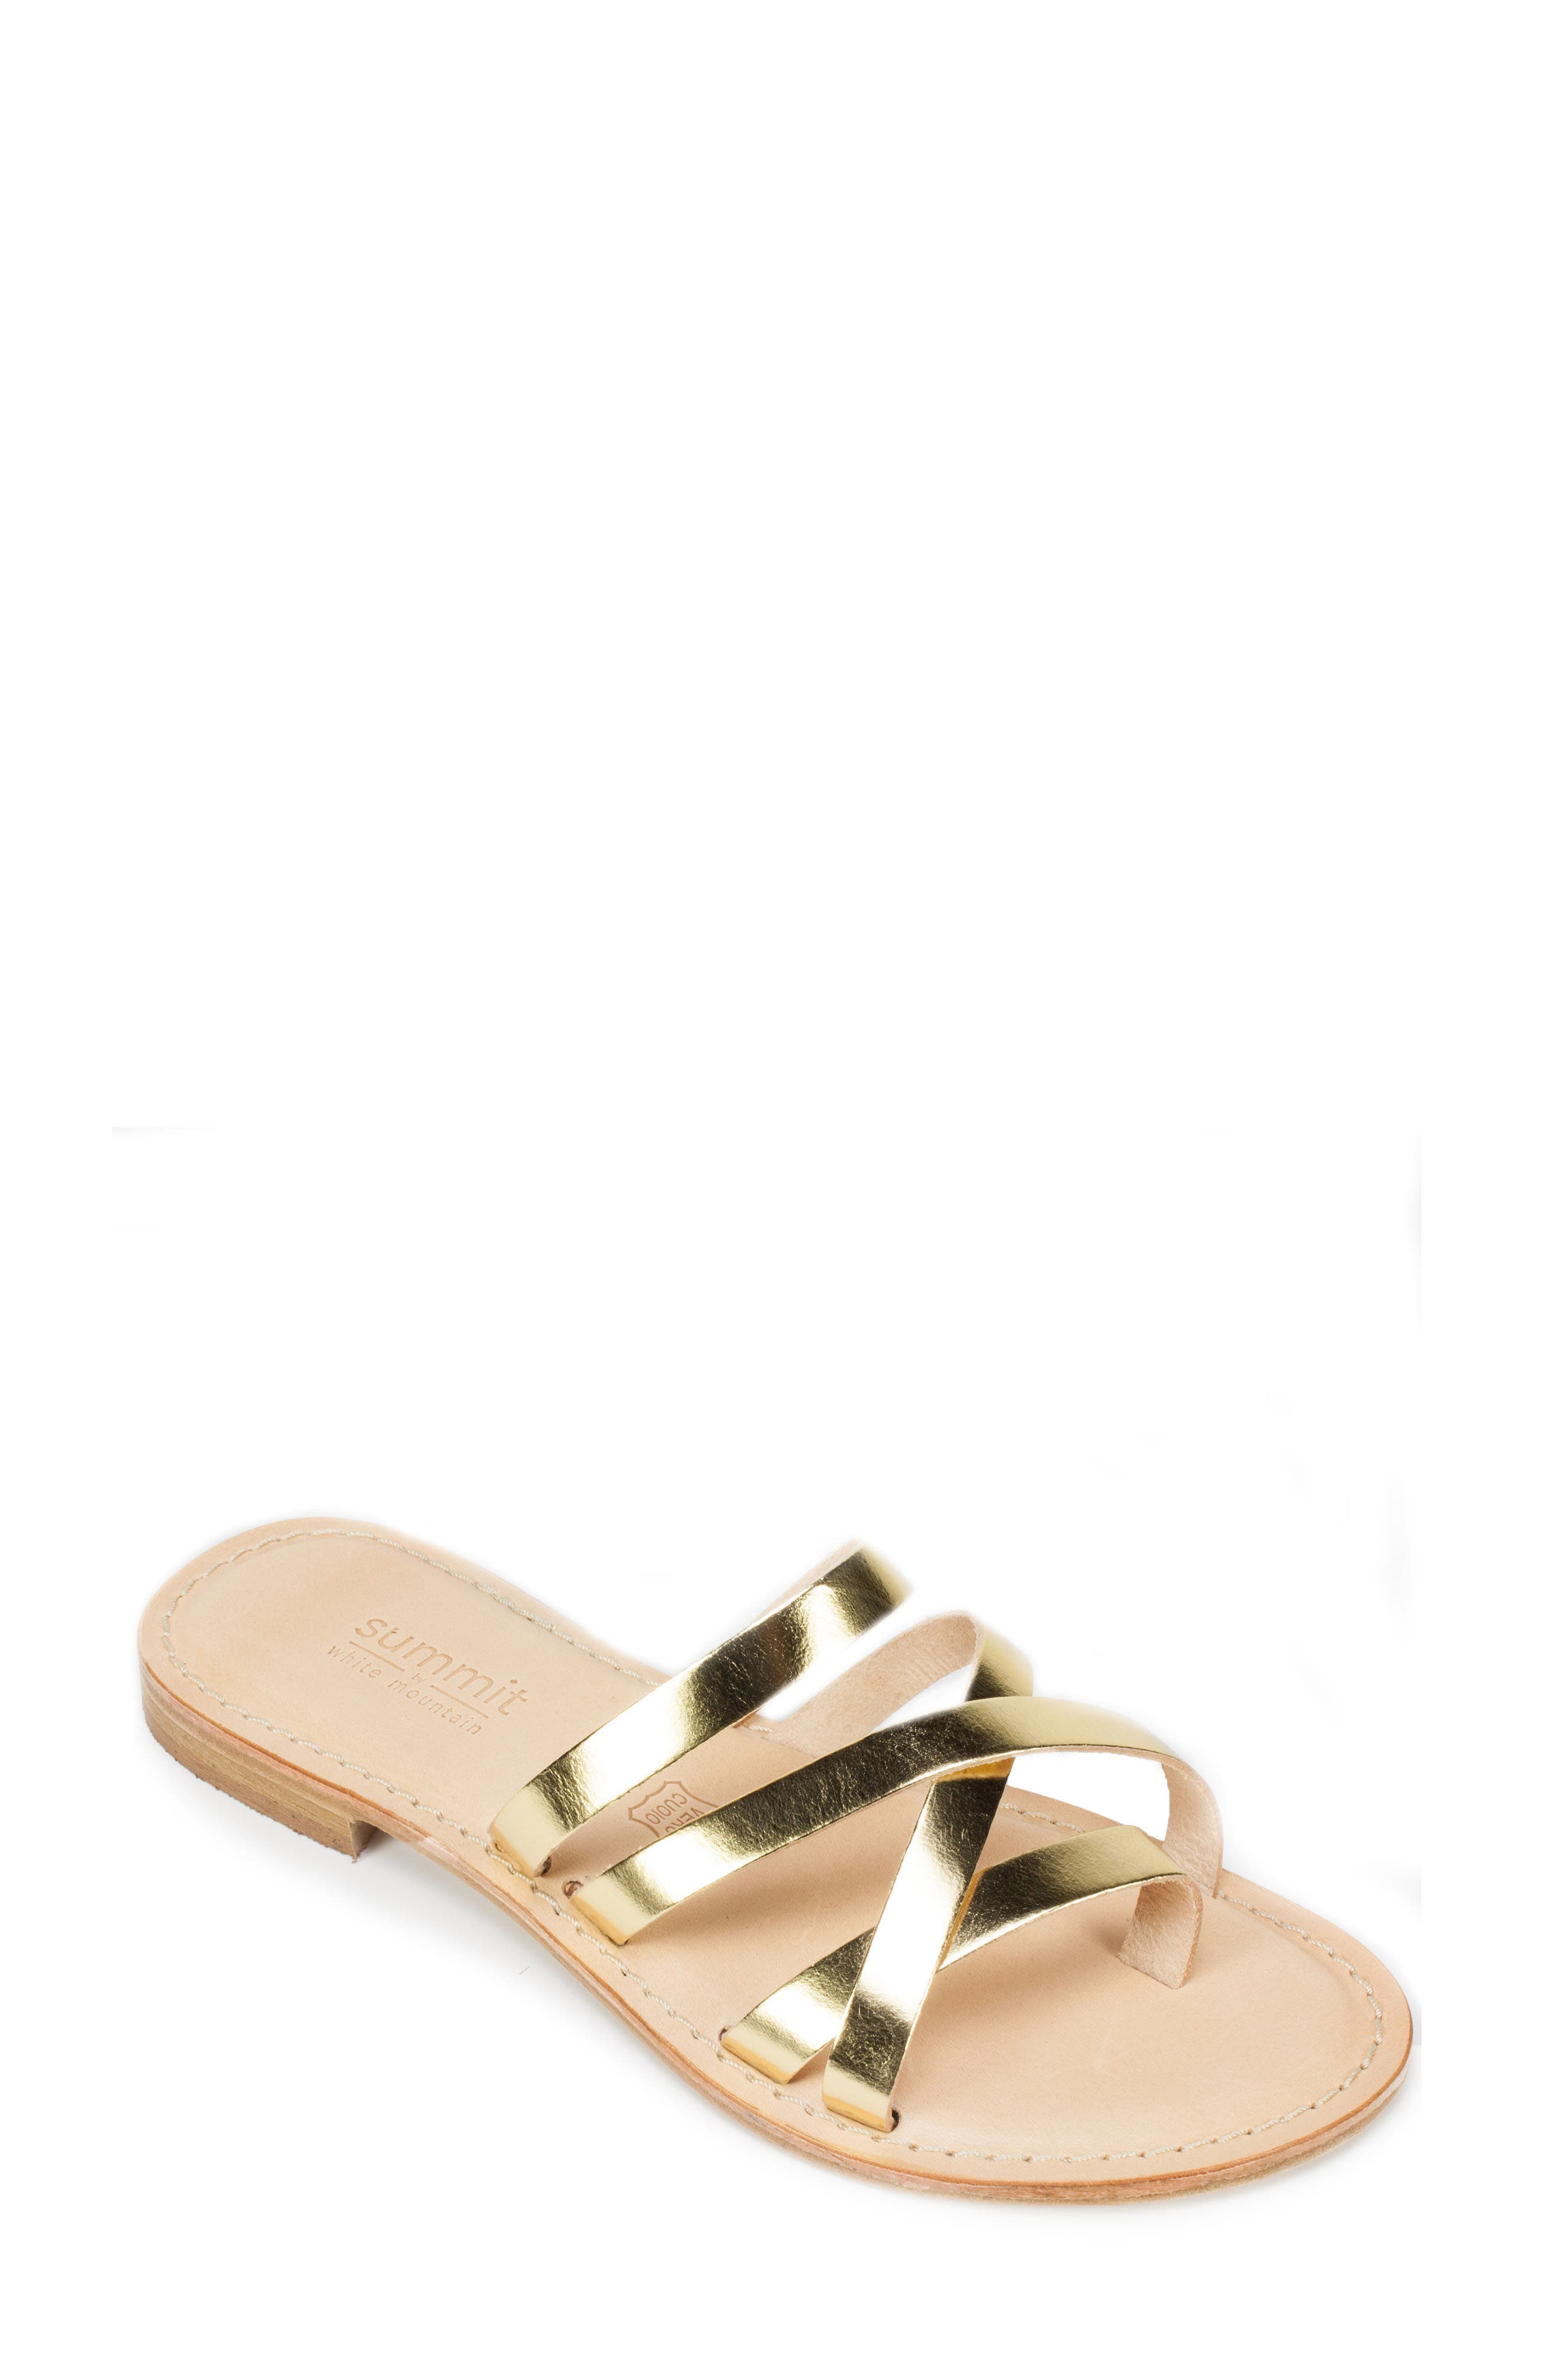 SUMMIT Edlyn Thong Sandal